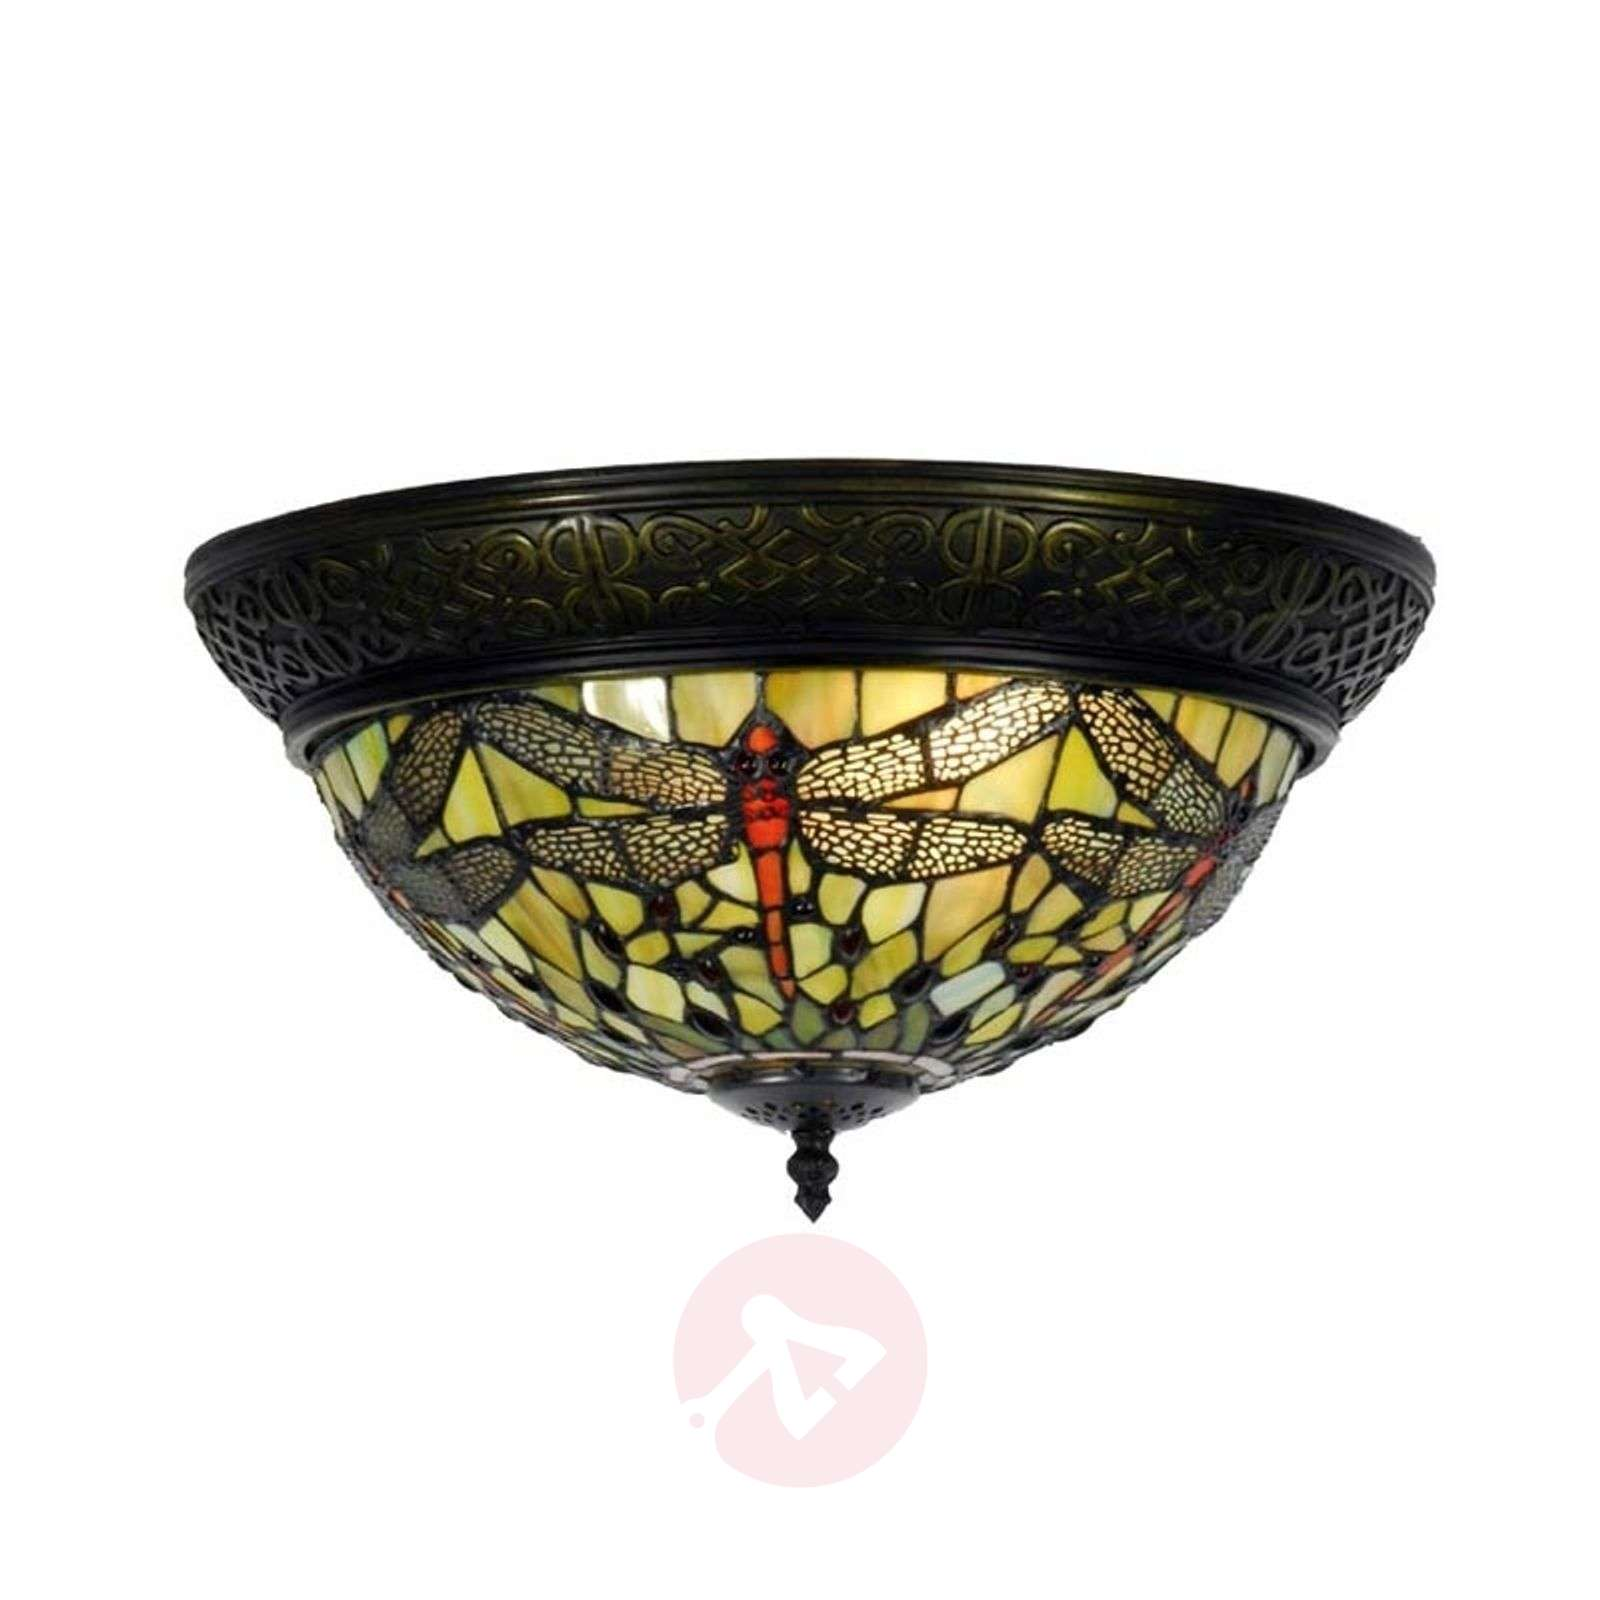 Greene Ceiling Lamp In The Tiffany Style 6064142 01